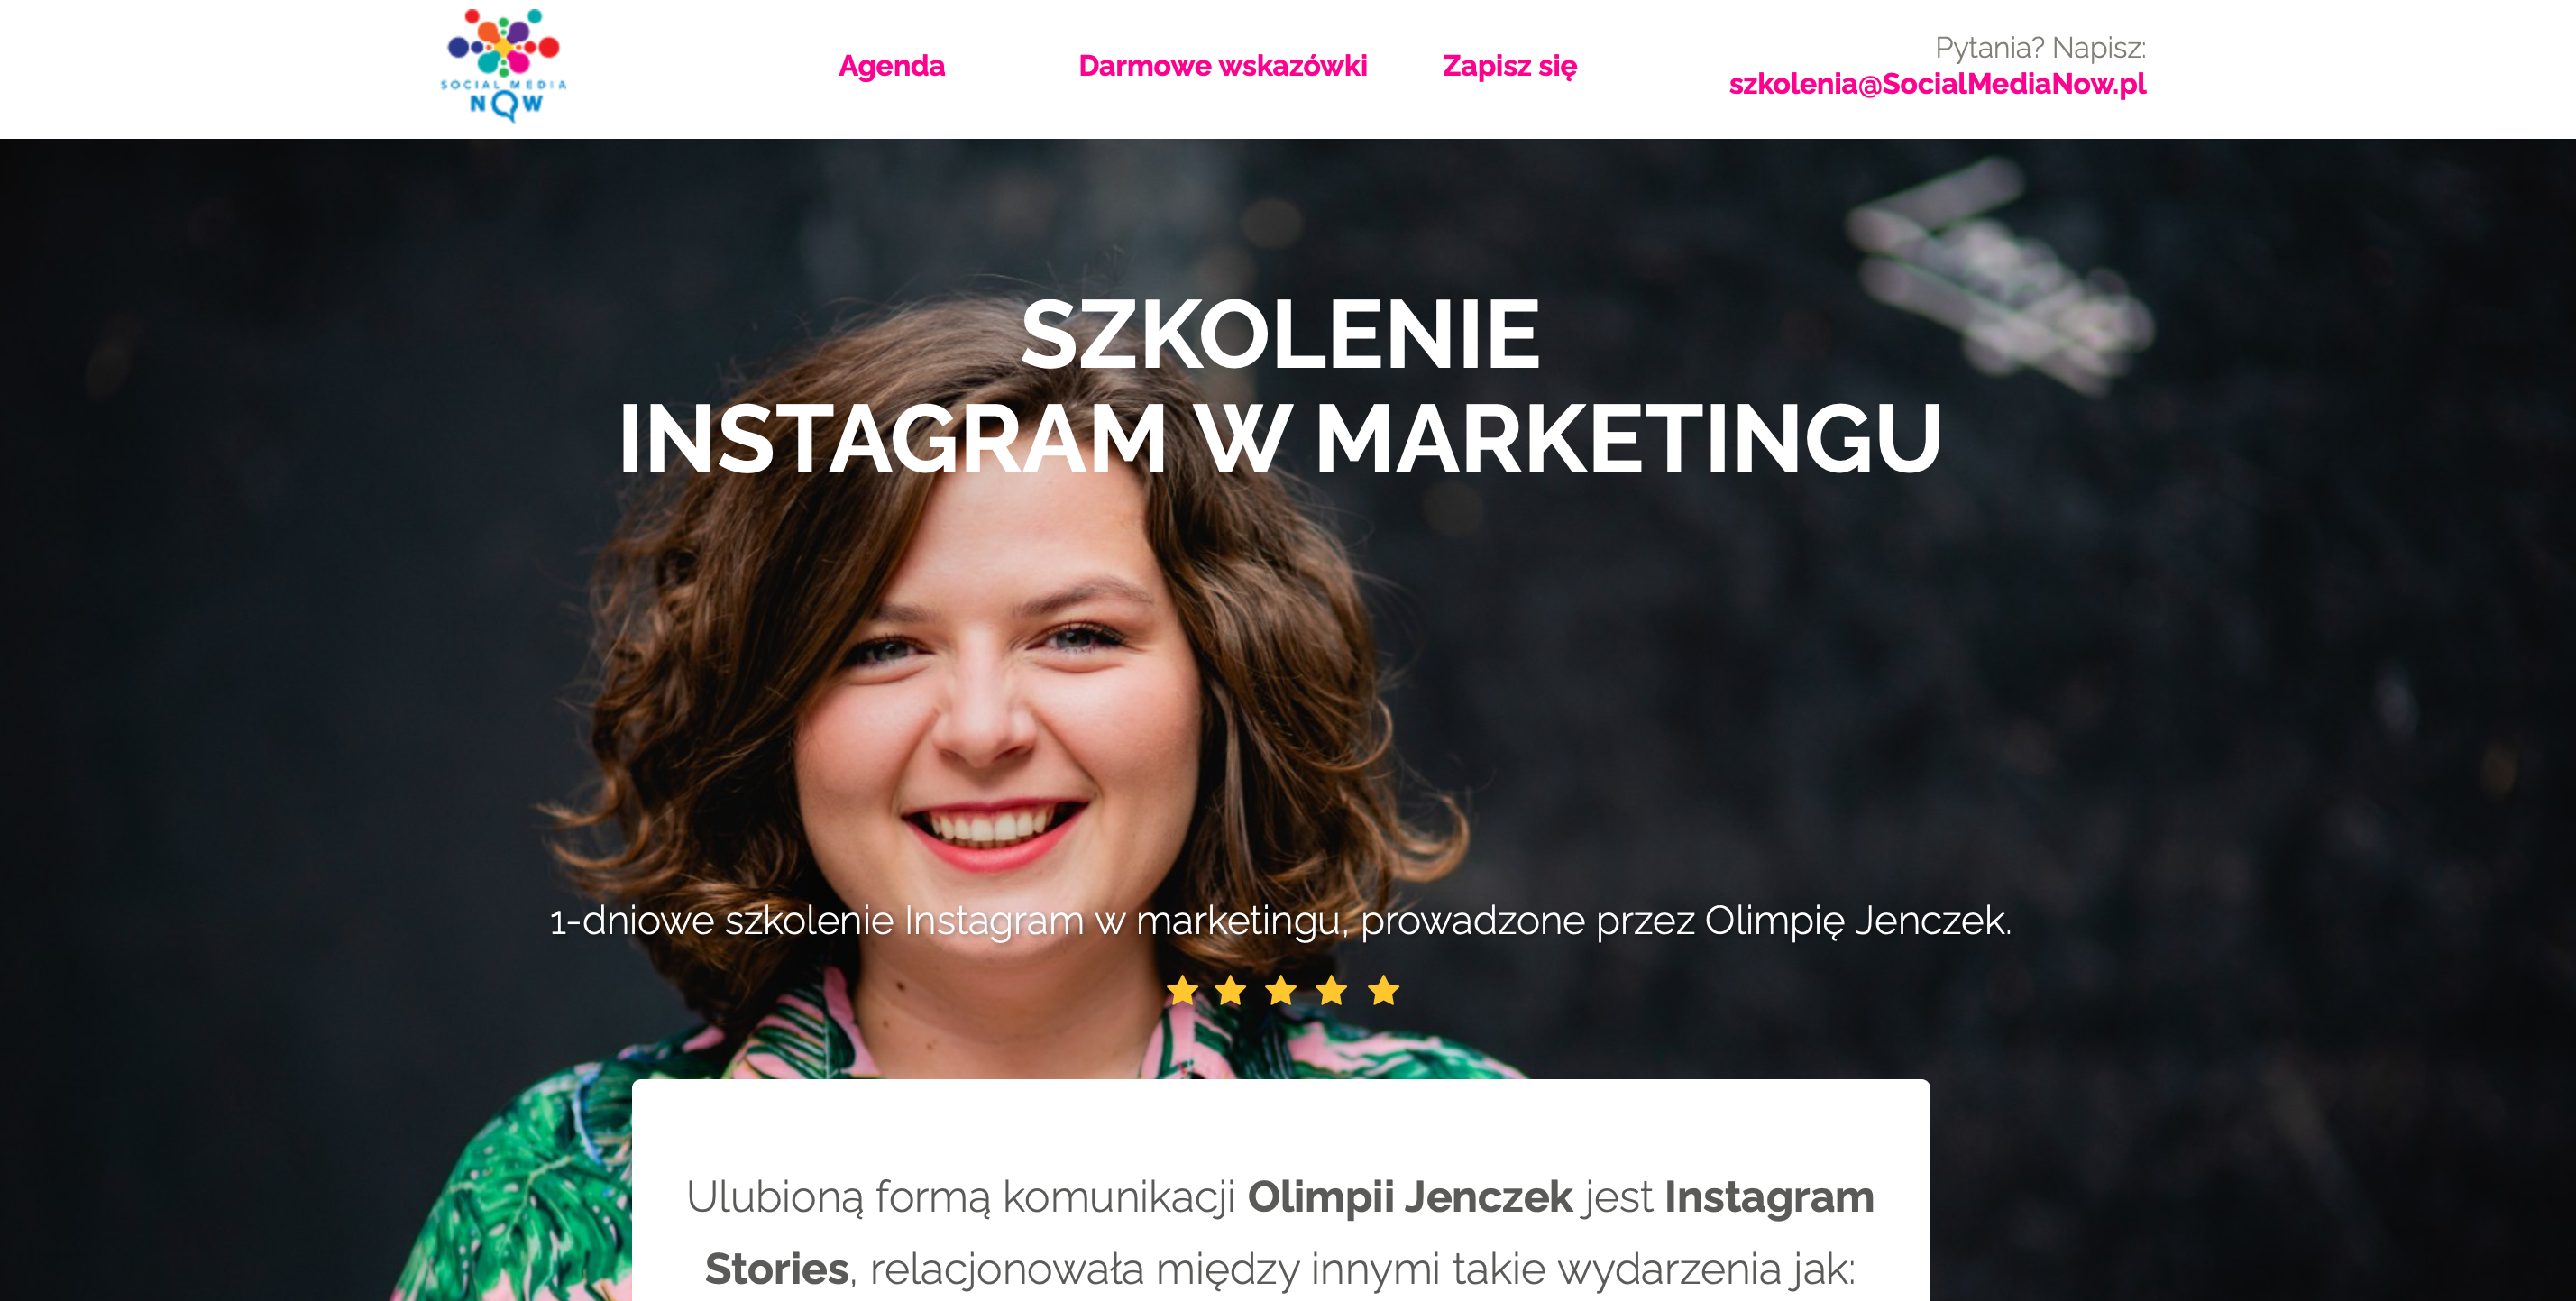 Instagram w marketingu